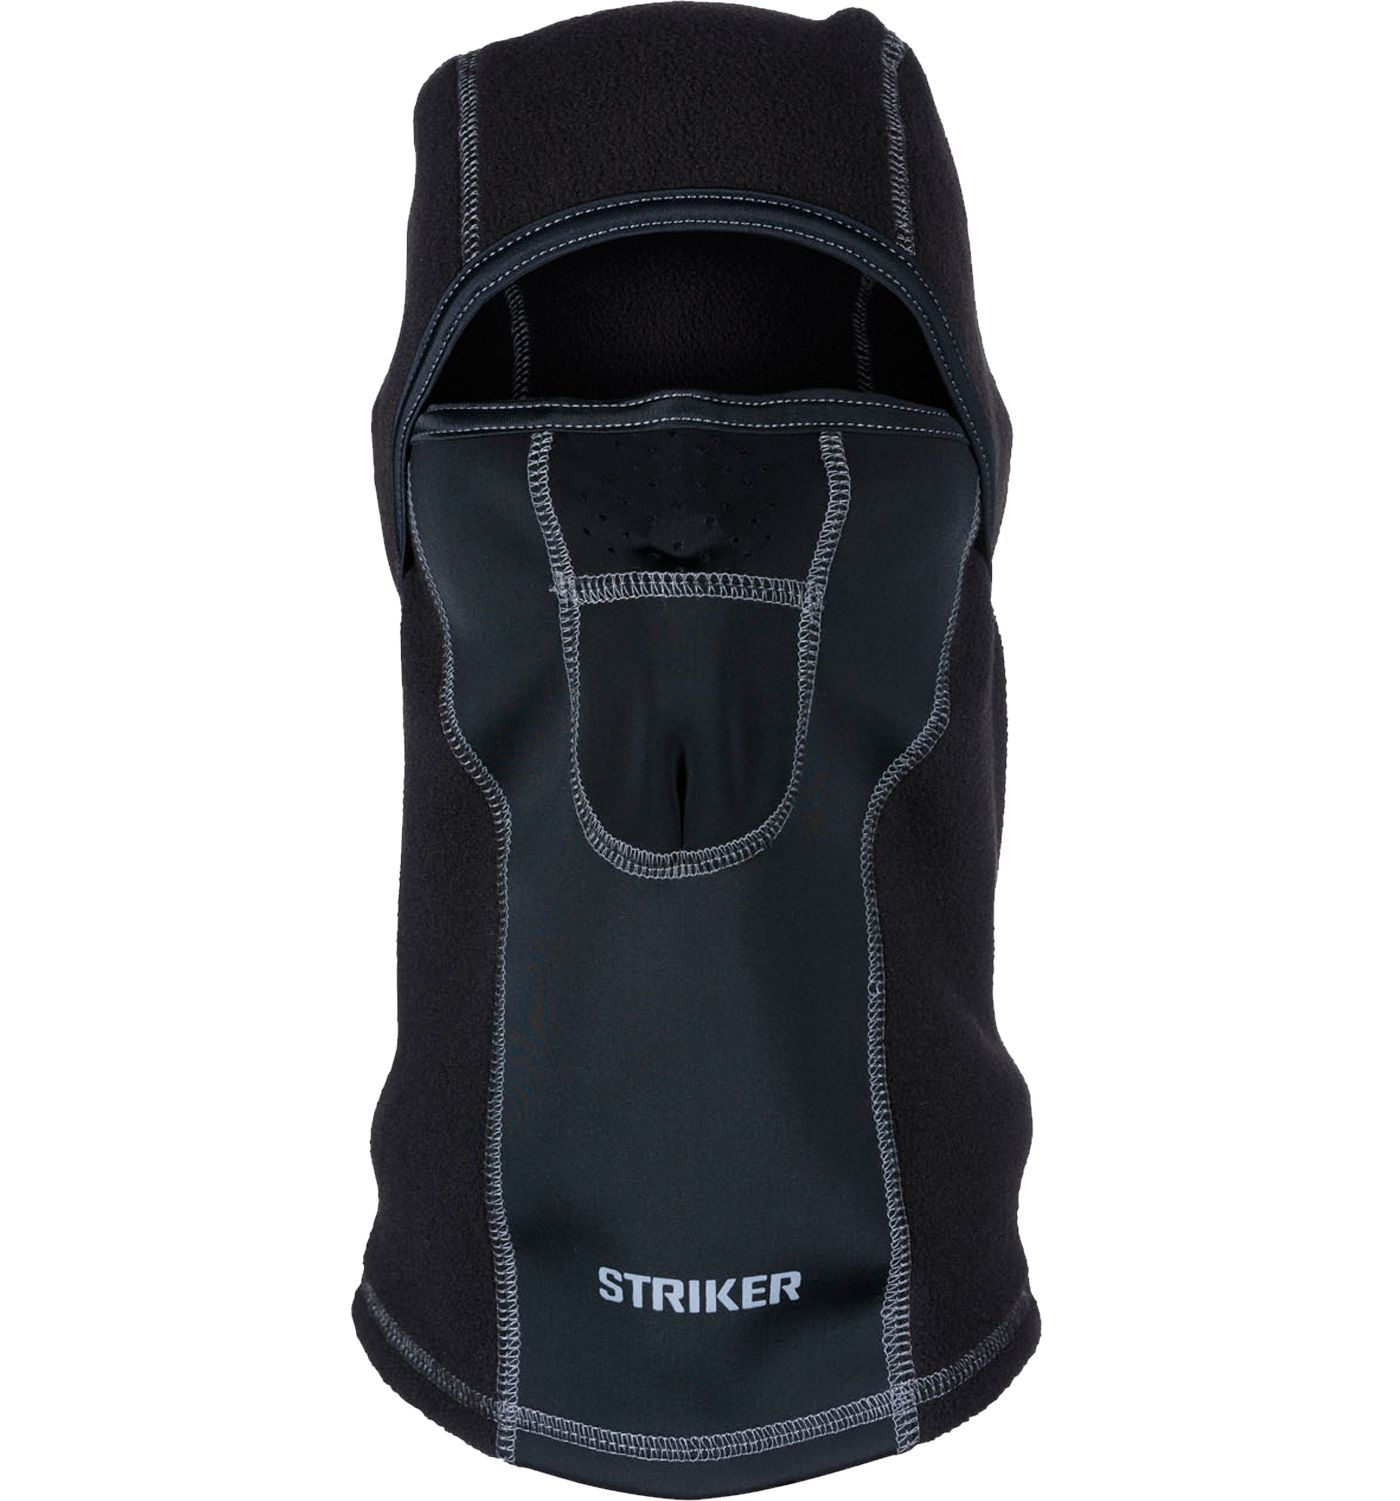 Striker Ice Adult HeadRush Balaclava